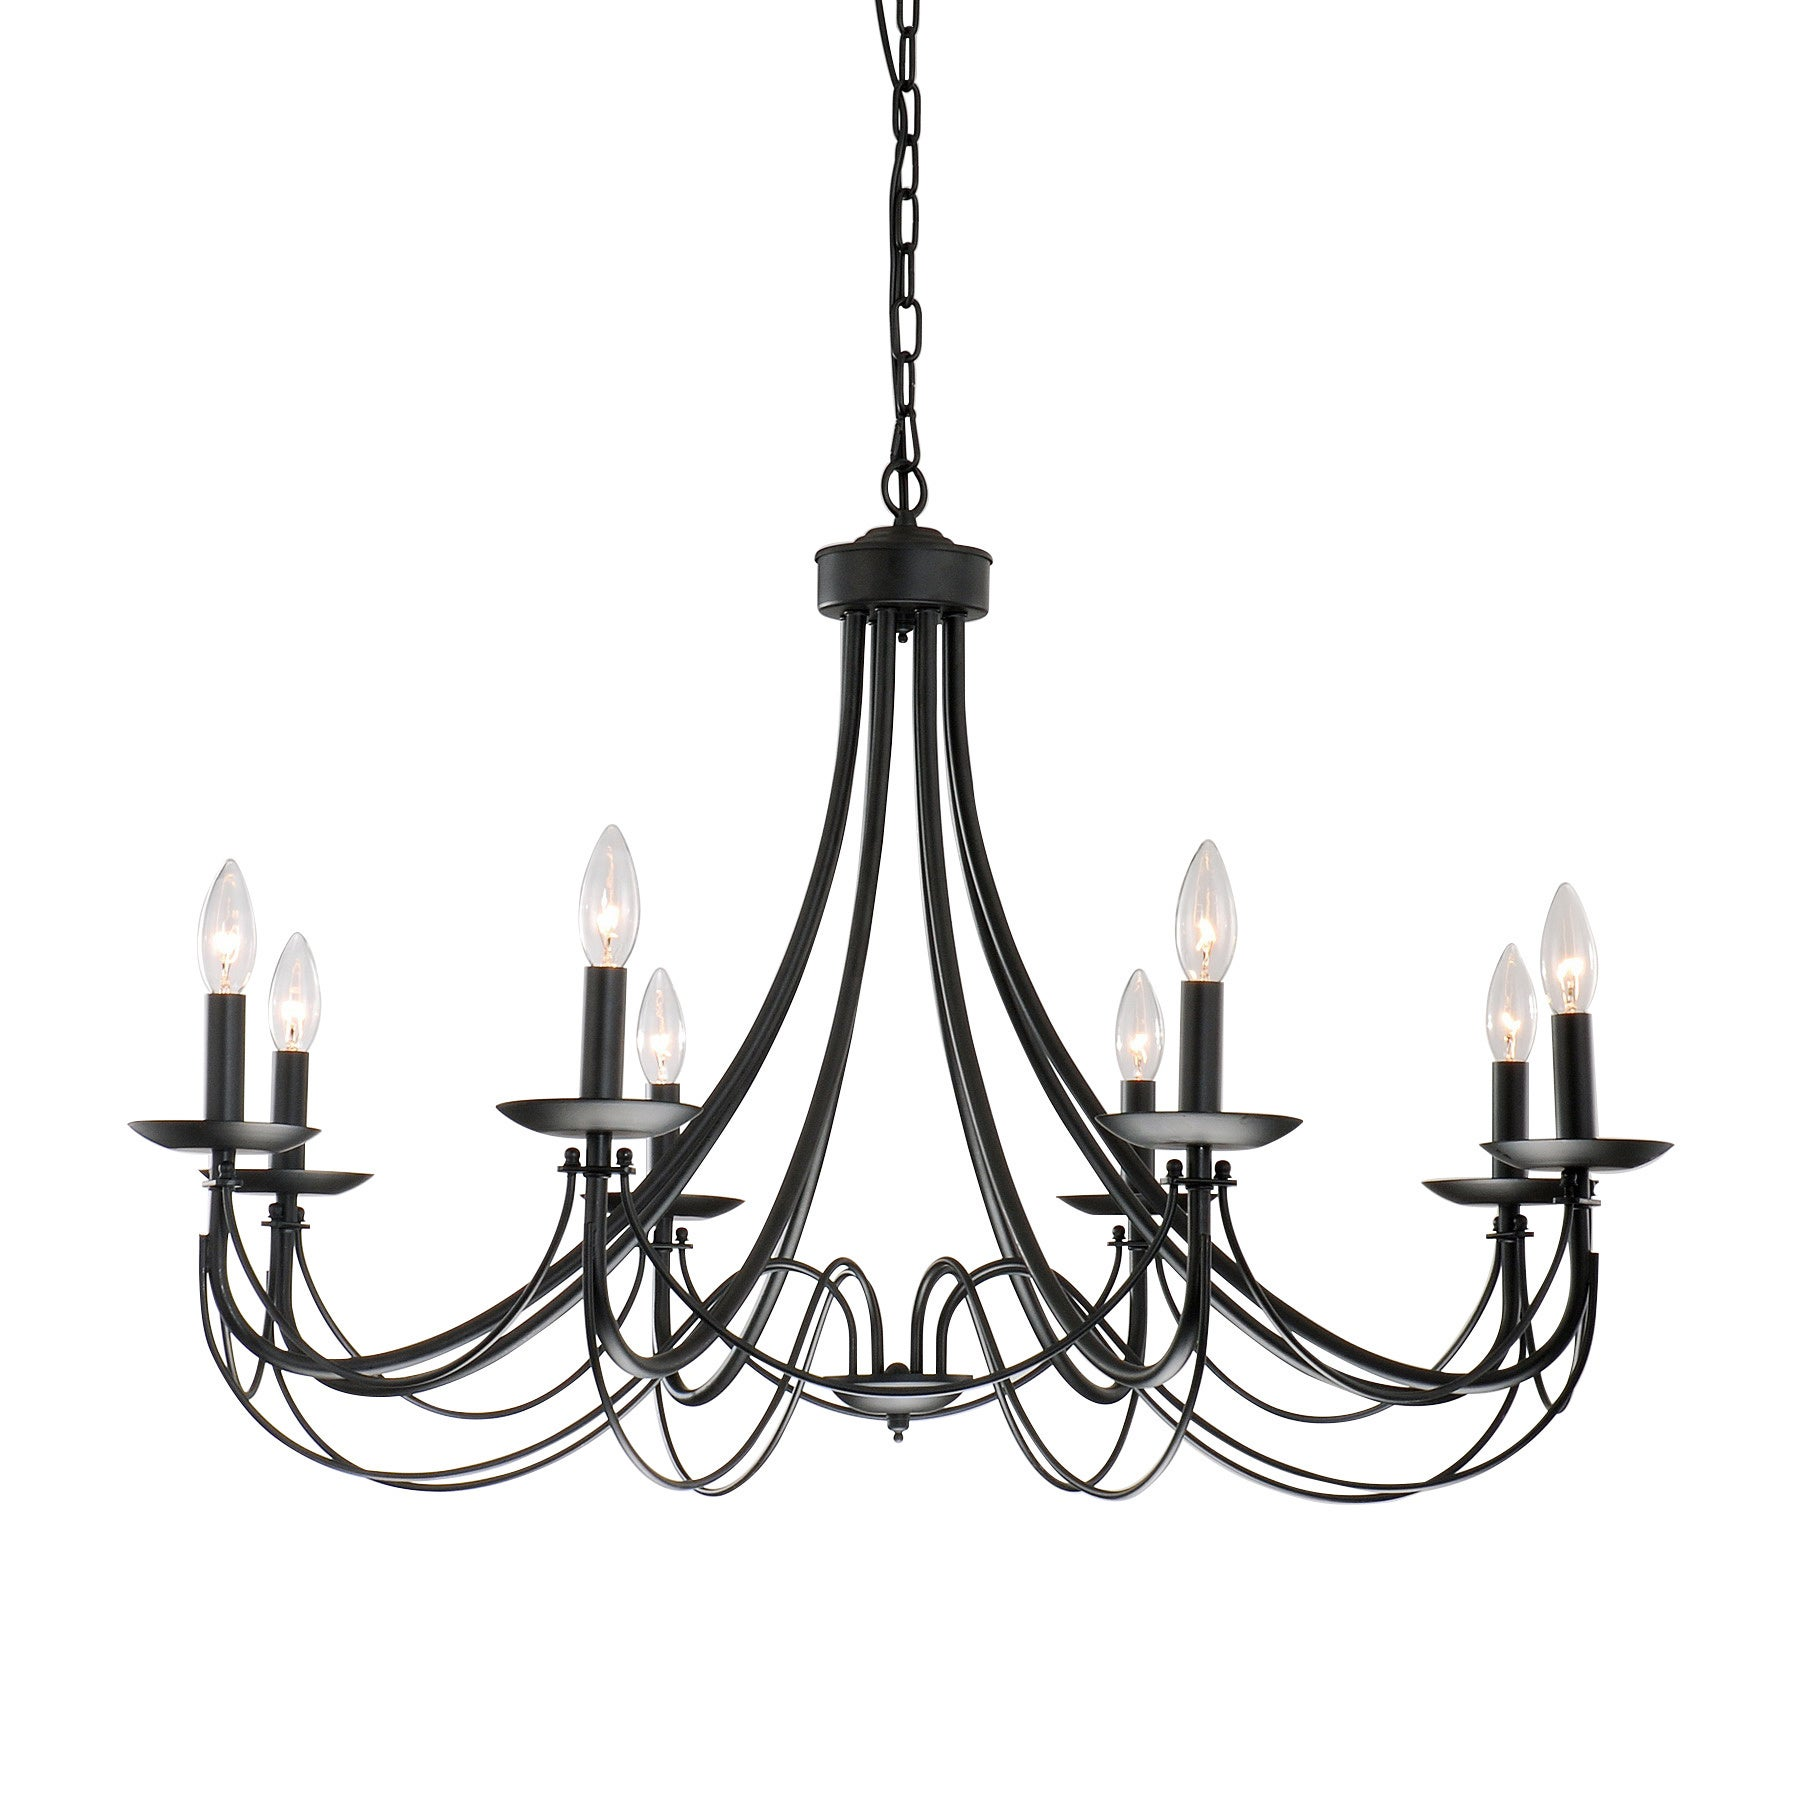 The gray barn calloway hill iron 8 light black chandelier